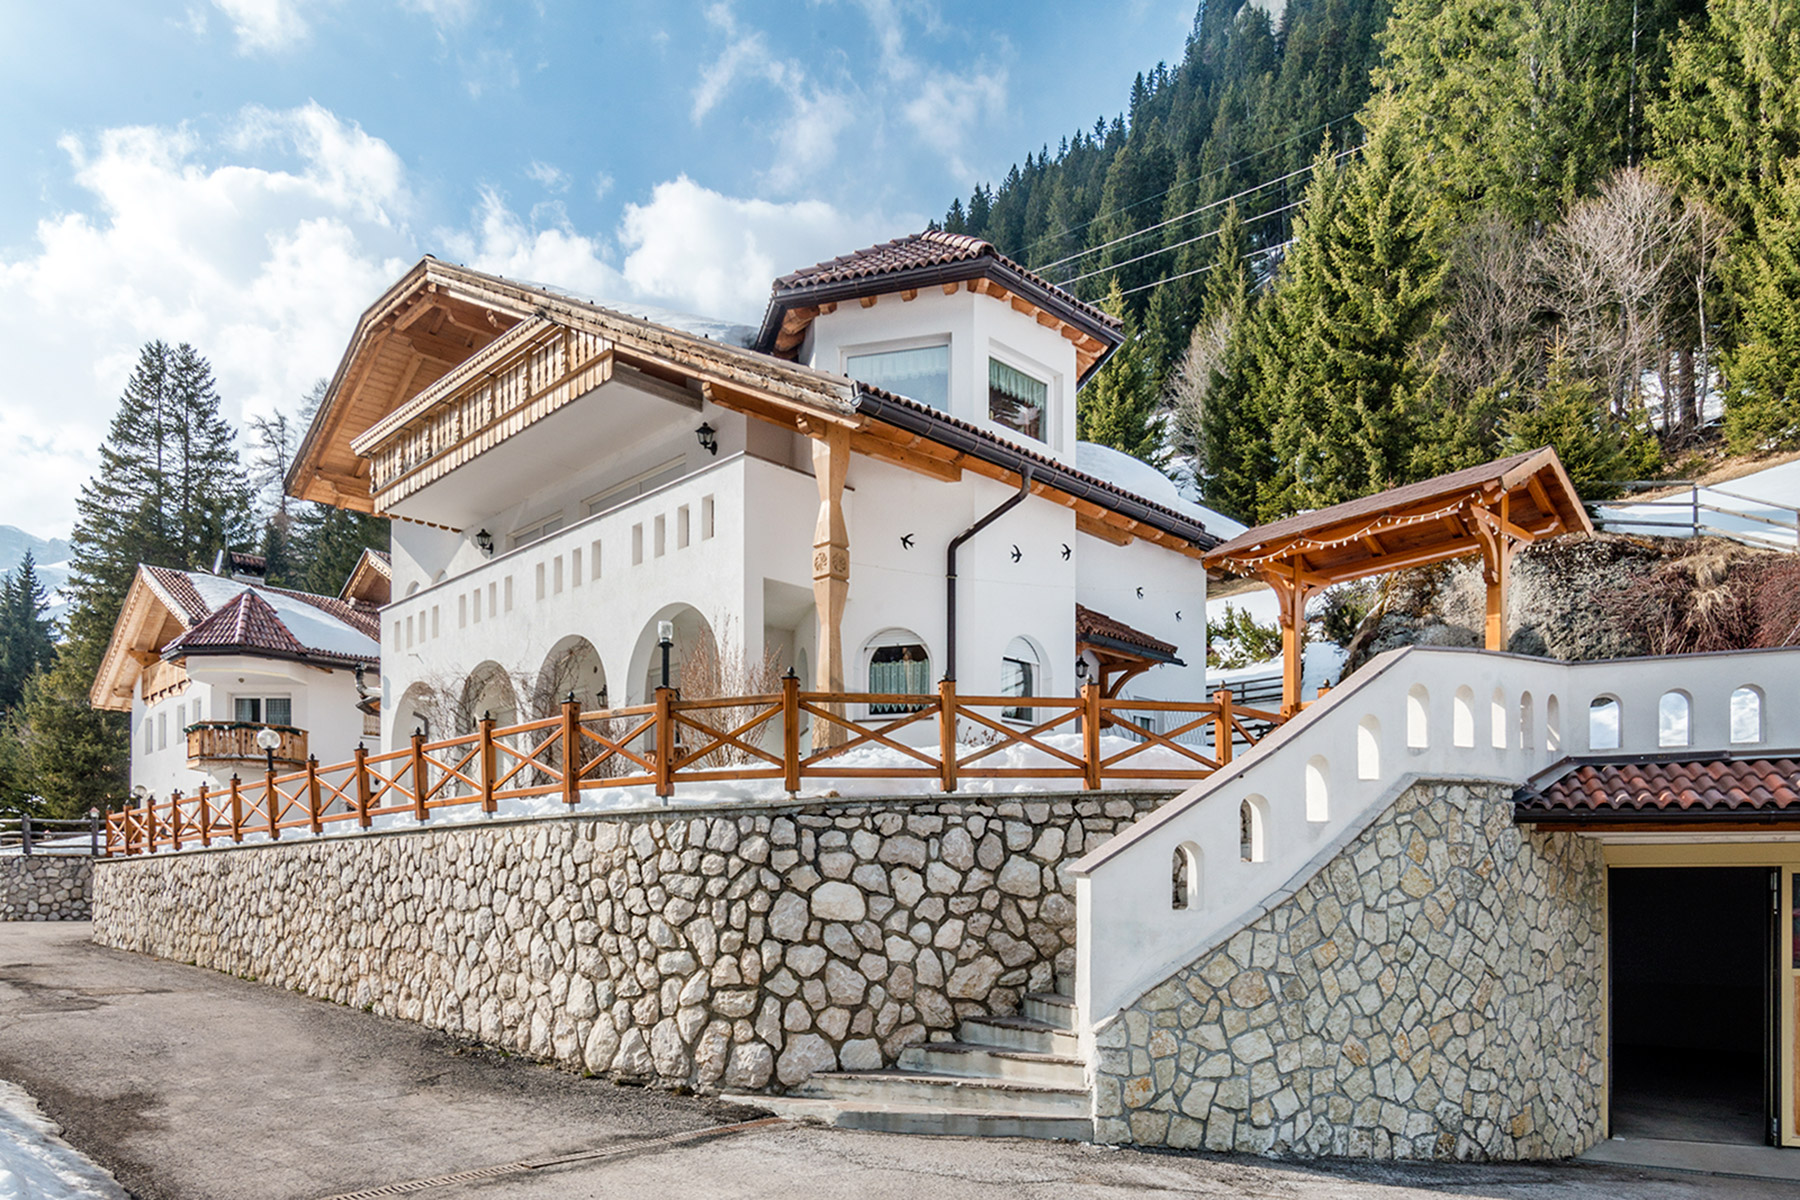 Additional photo for property listing at New construction Villa by famous architect Hermann Kostner Via Alfauro Arabba, Belluno 32020 Italie